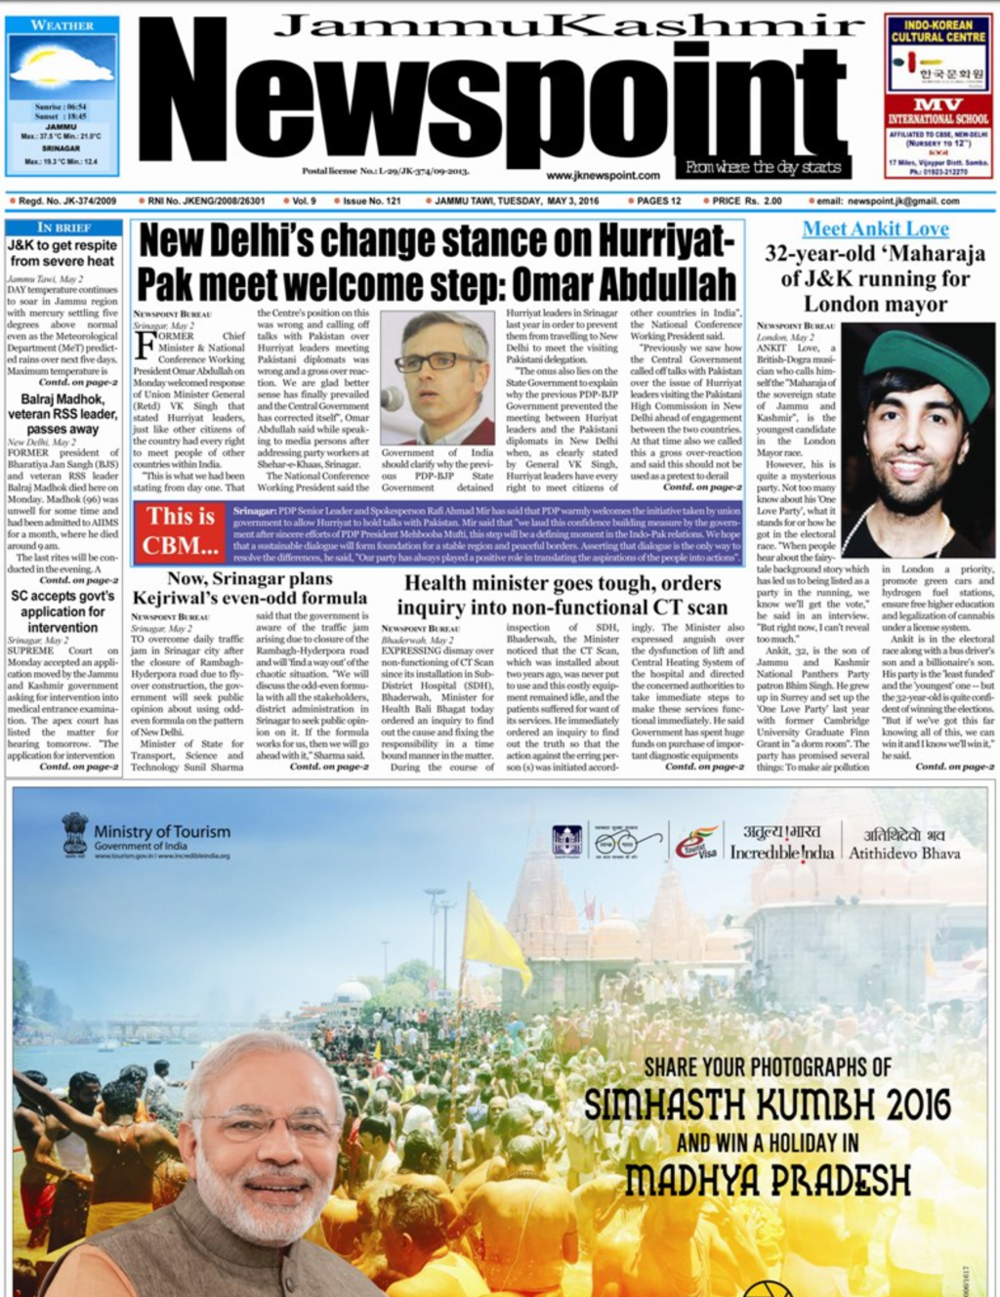 Ankit Love on the front page of the  JammuKashmir Newspoint  paper along with Omar Abdullah and Narendra Modi, as reported in  Newsweek Europe .